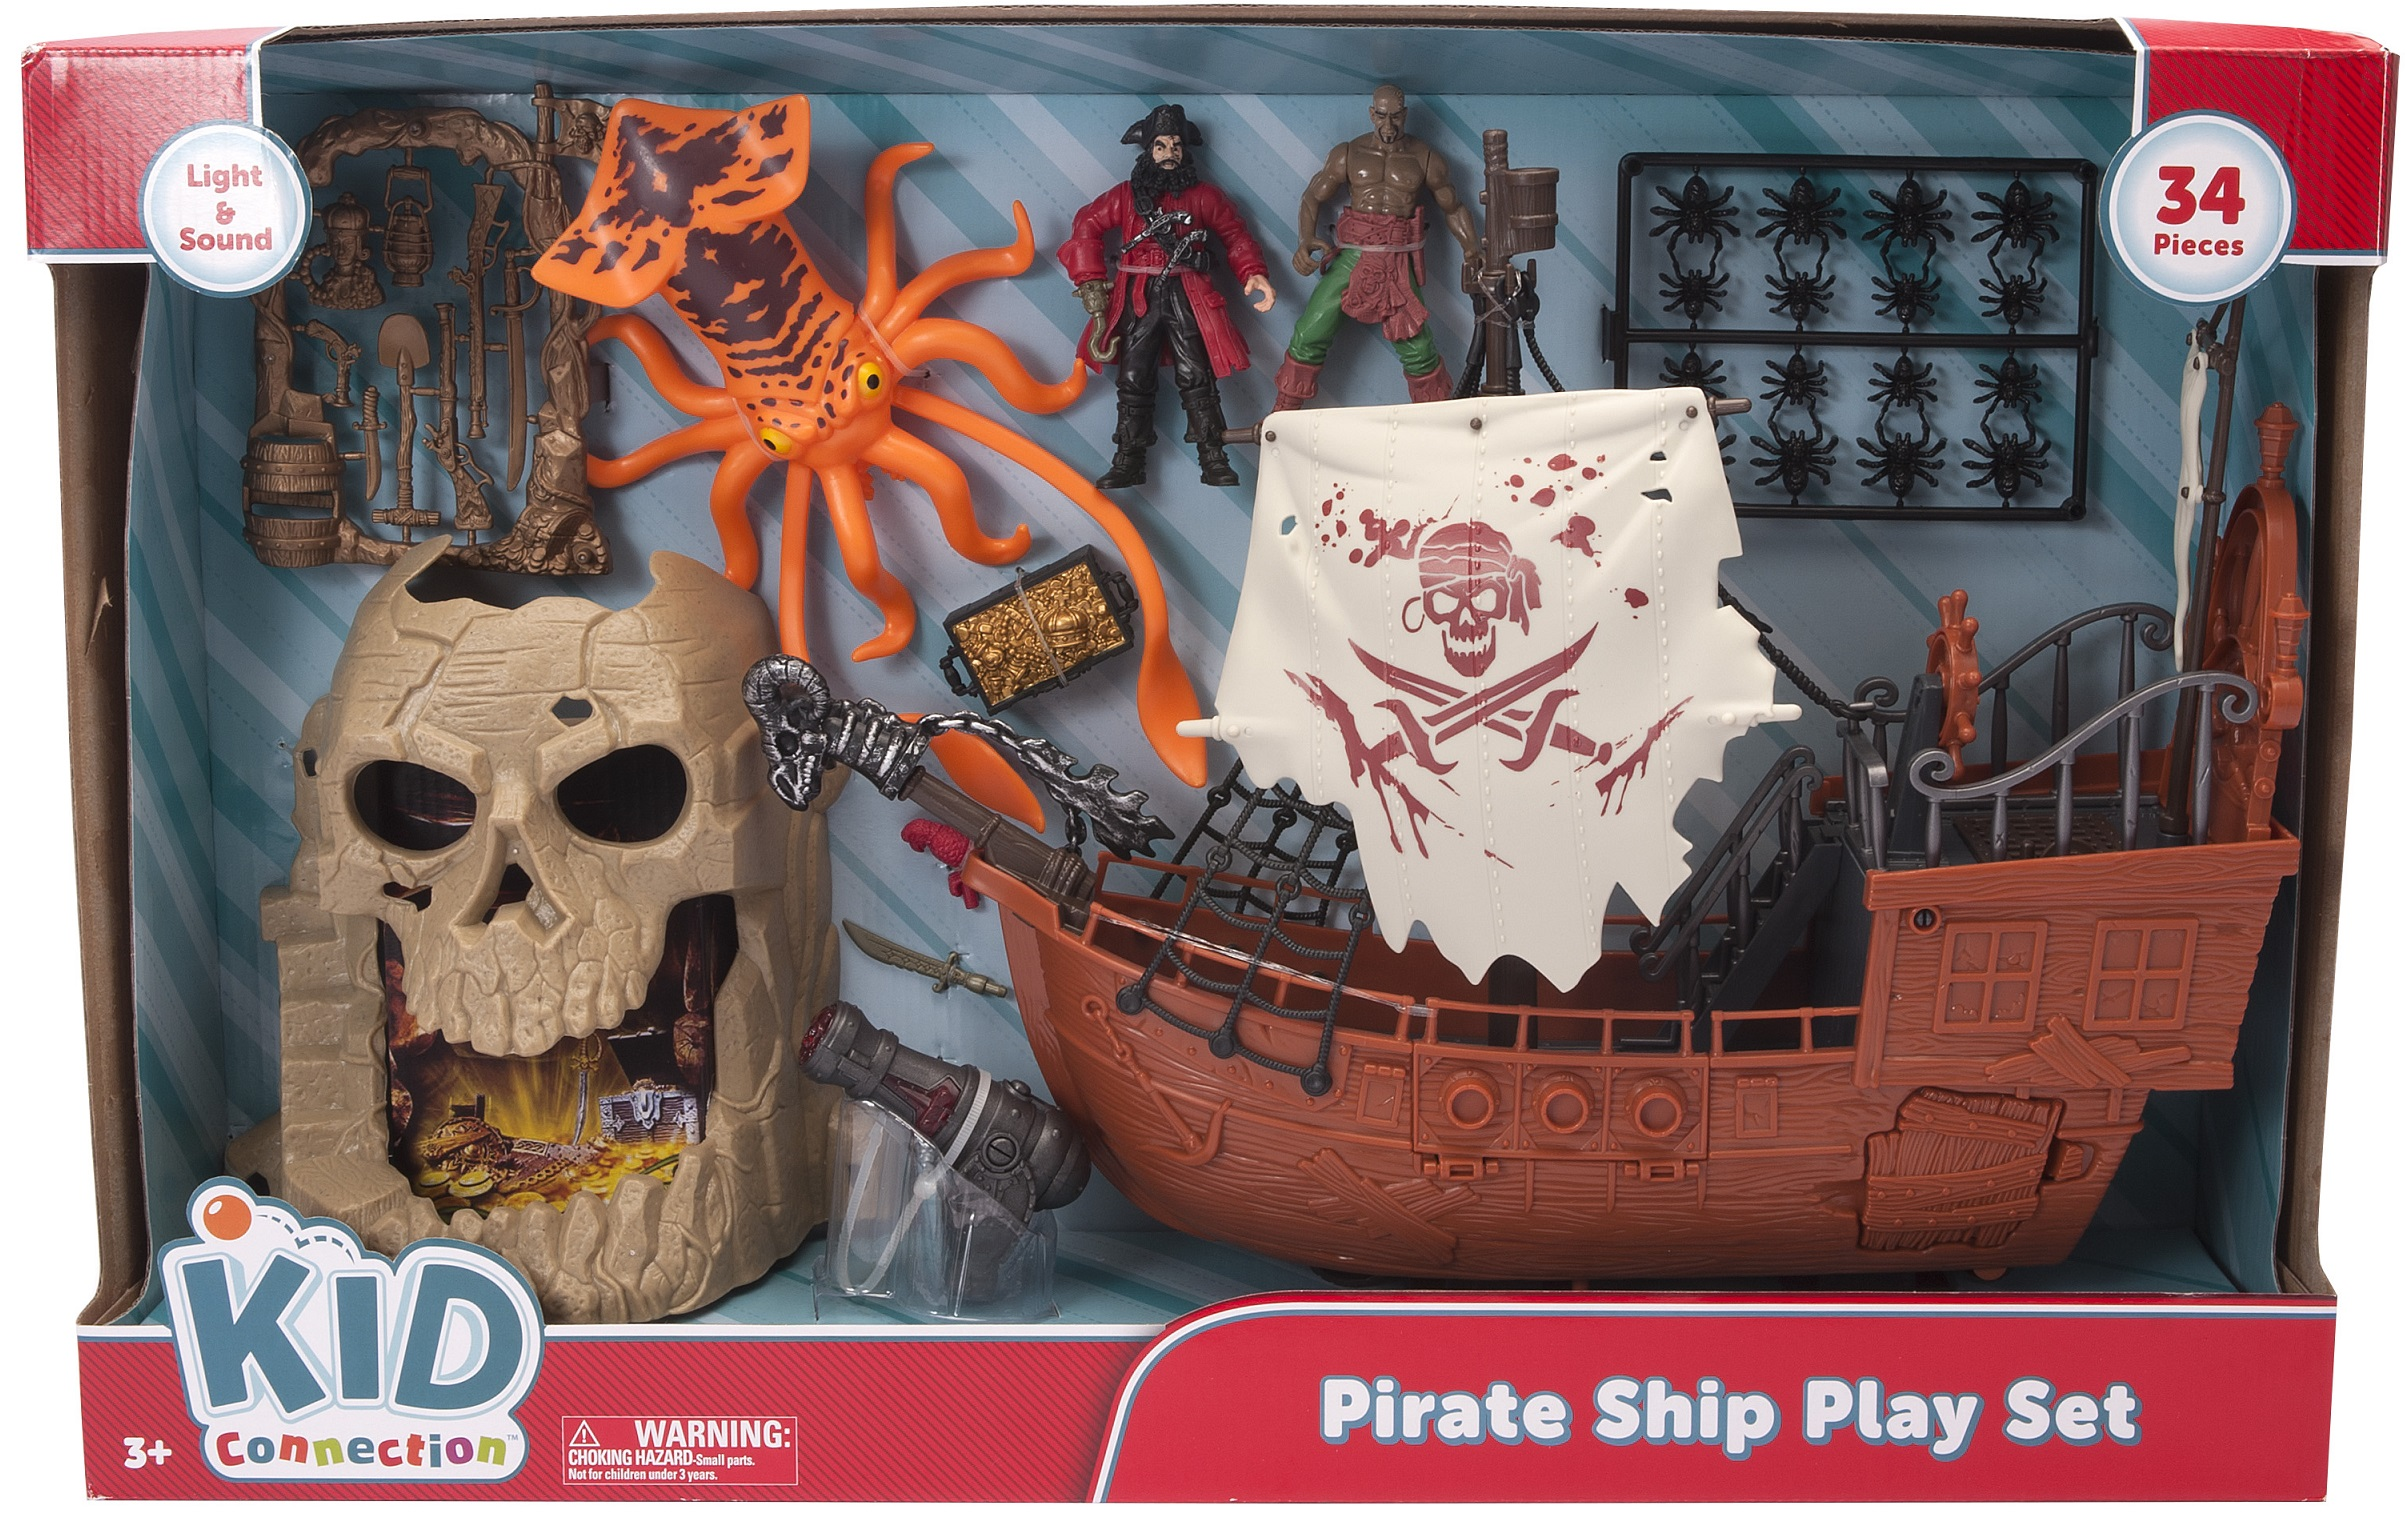 Kid Connection Pirate Captain Ship Playset by Chap Mei Plastic Toys Mfy Ltd.